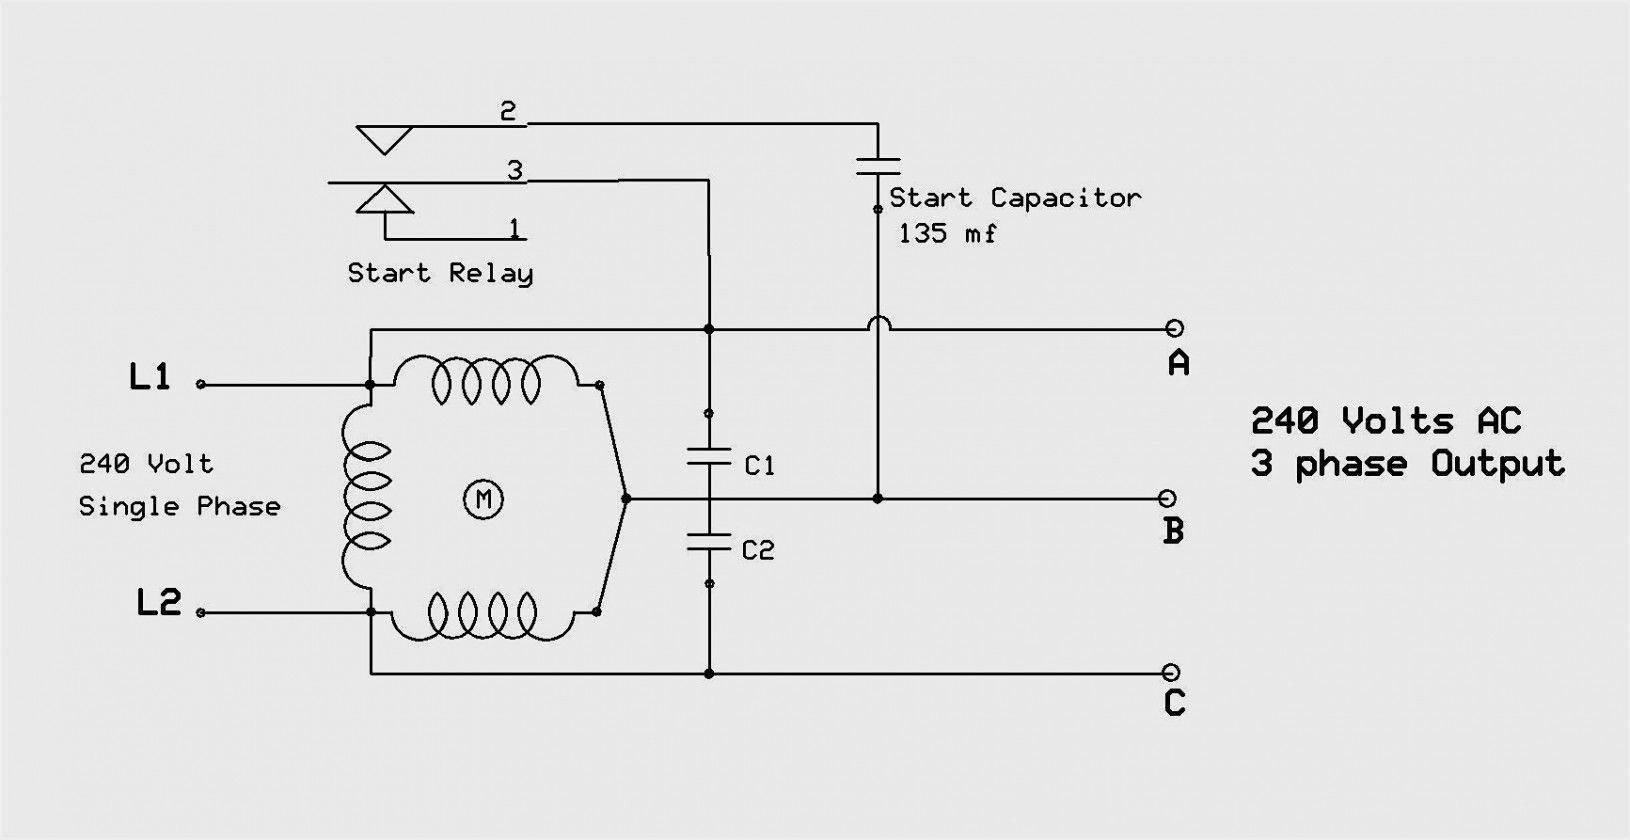 Wiring Diagram For 220 Volt Single Phase Motor Bookingritzcarlton Info Electrical Diagram Electrical Wiring Colours Diagram